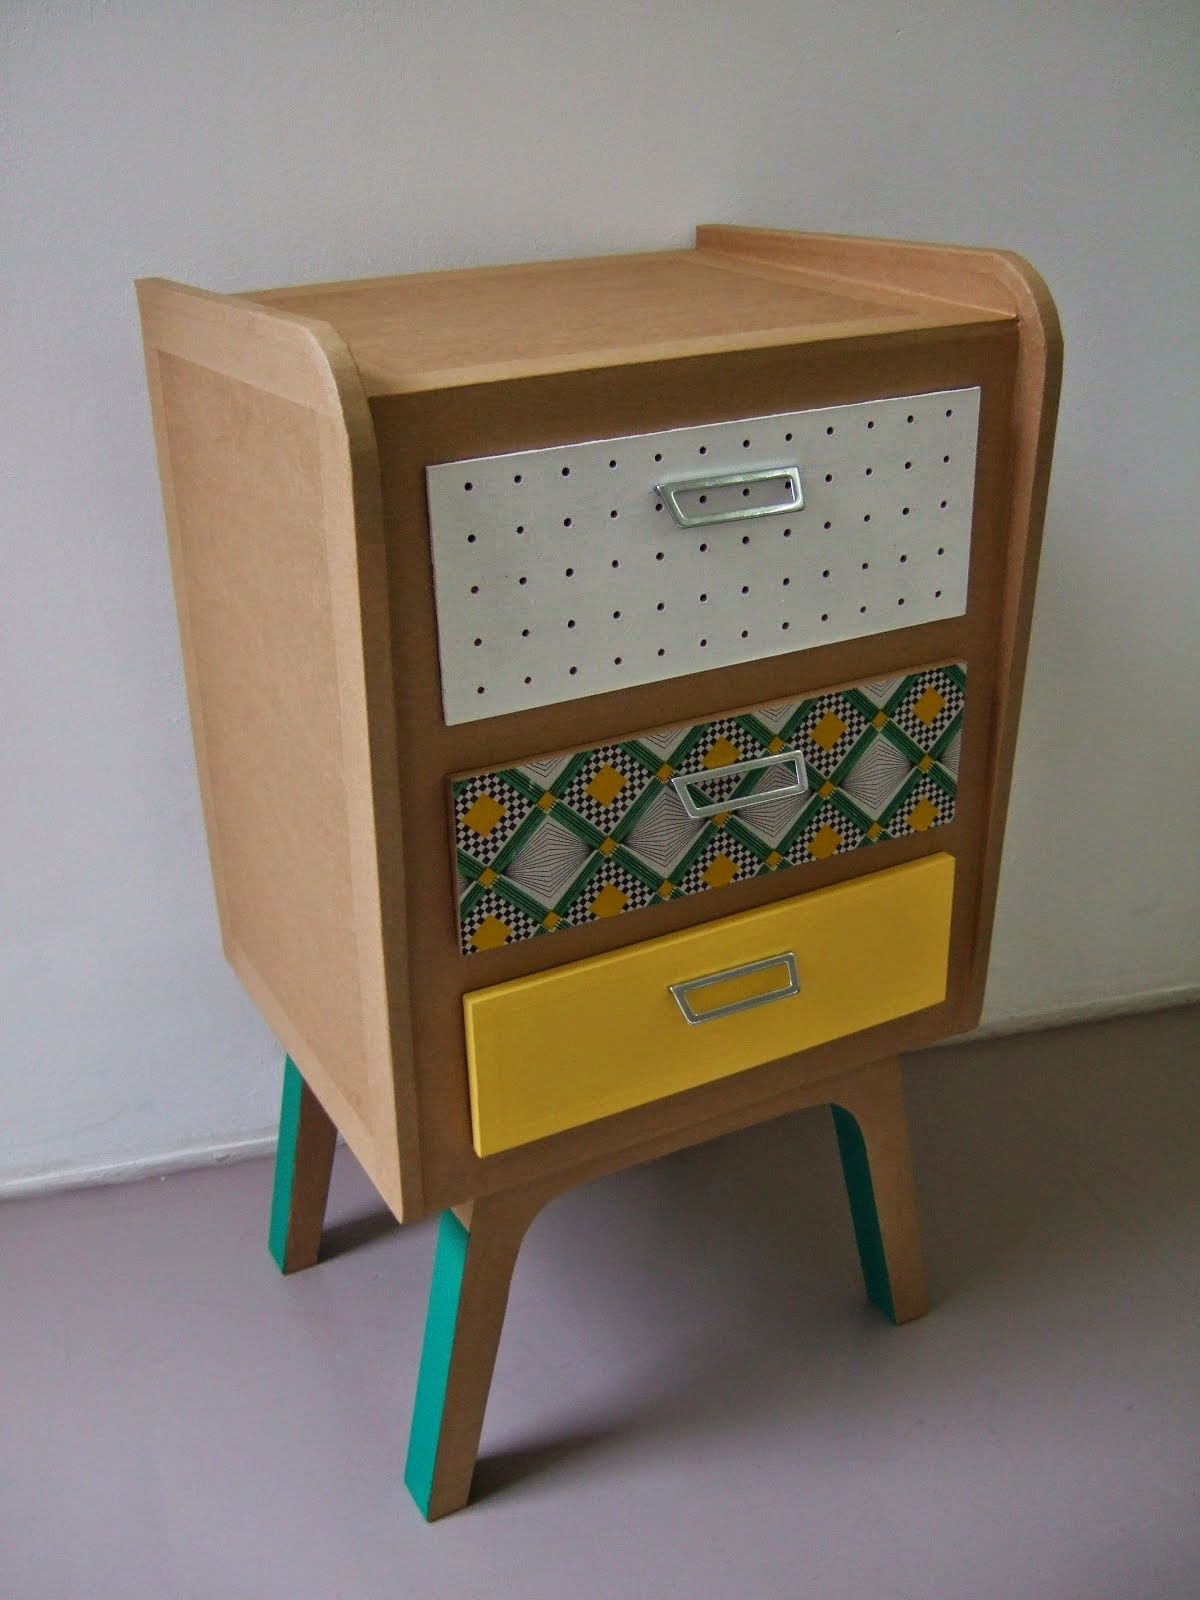 Commode En Carton Commode En Carton Cardboard Items Pinterest Commodes